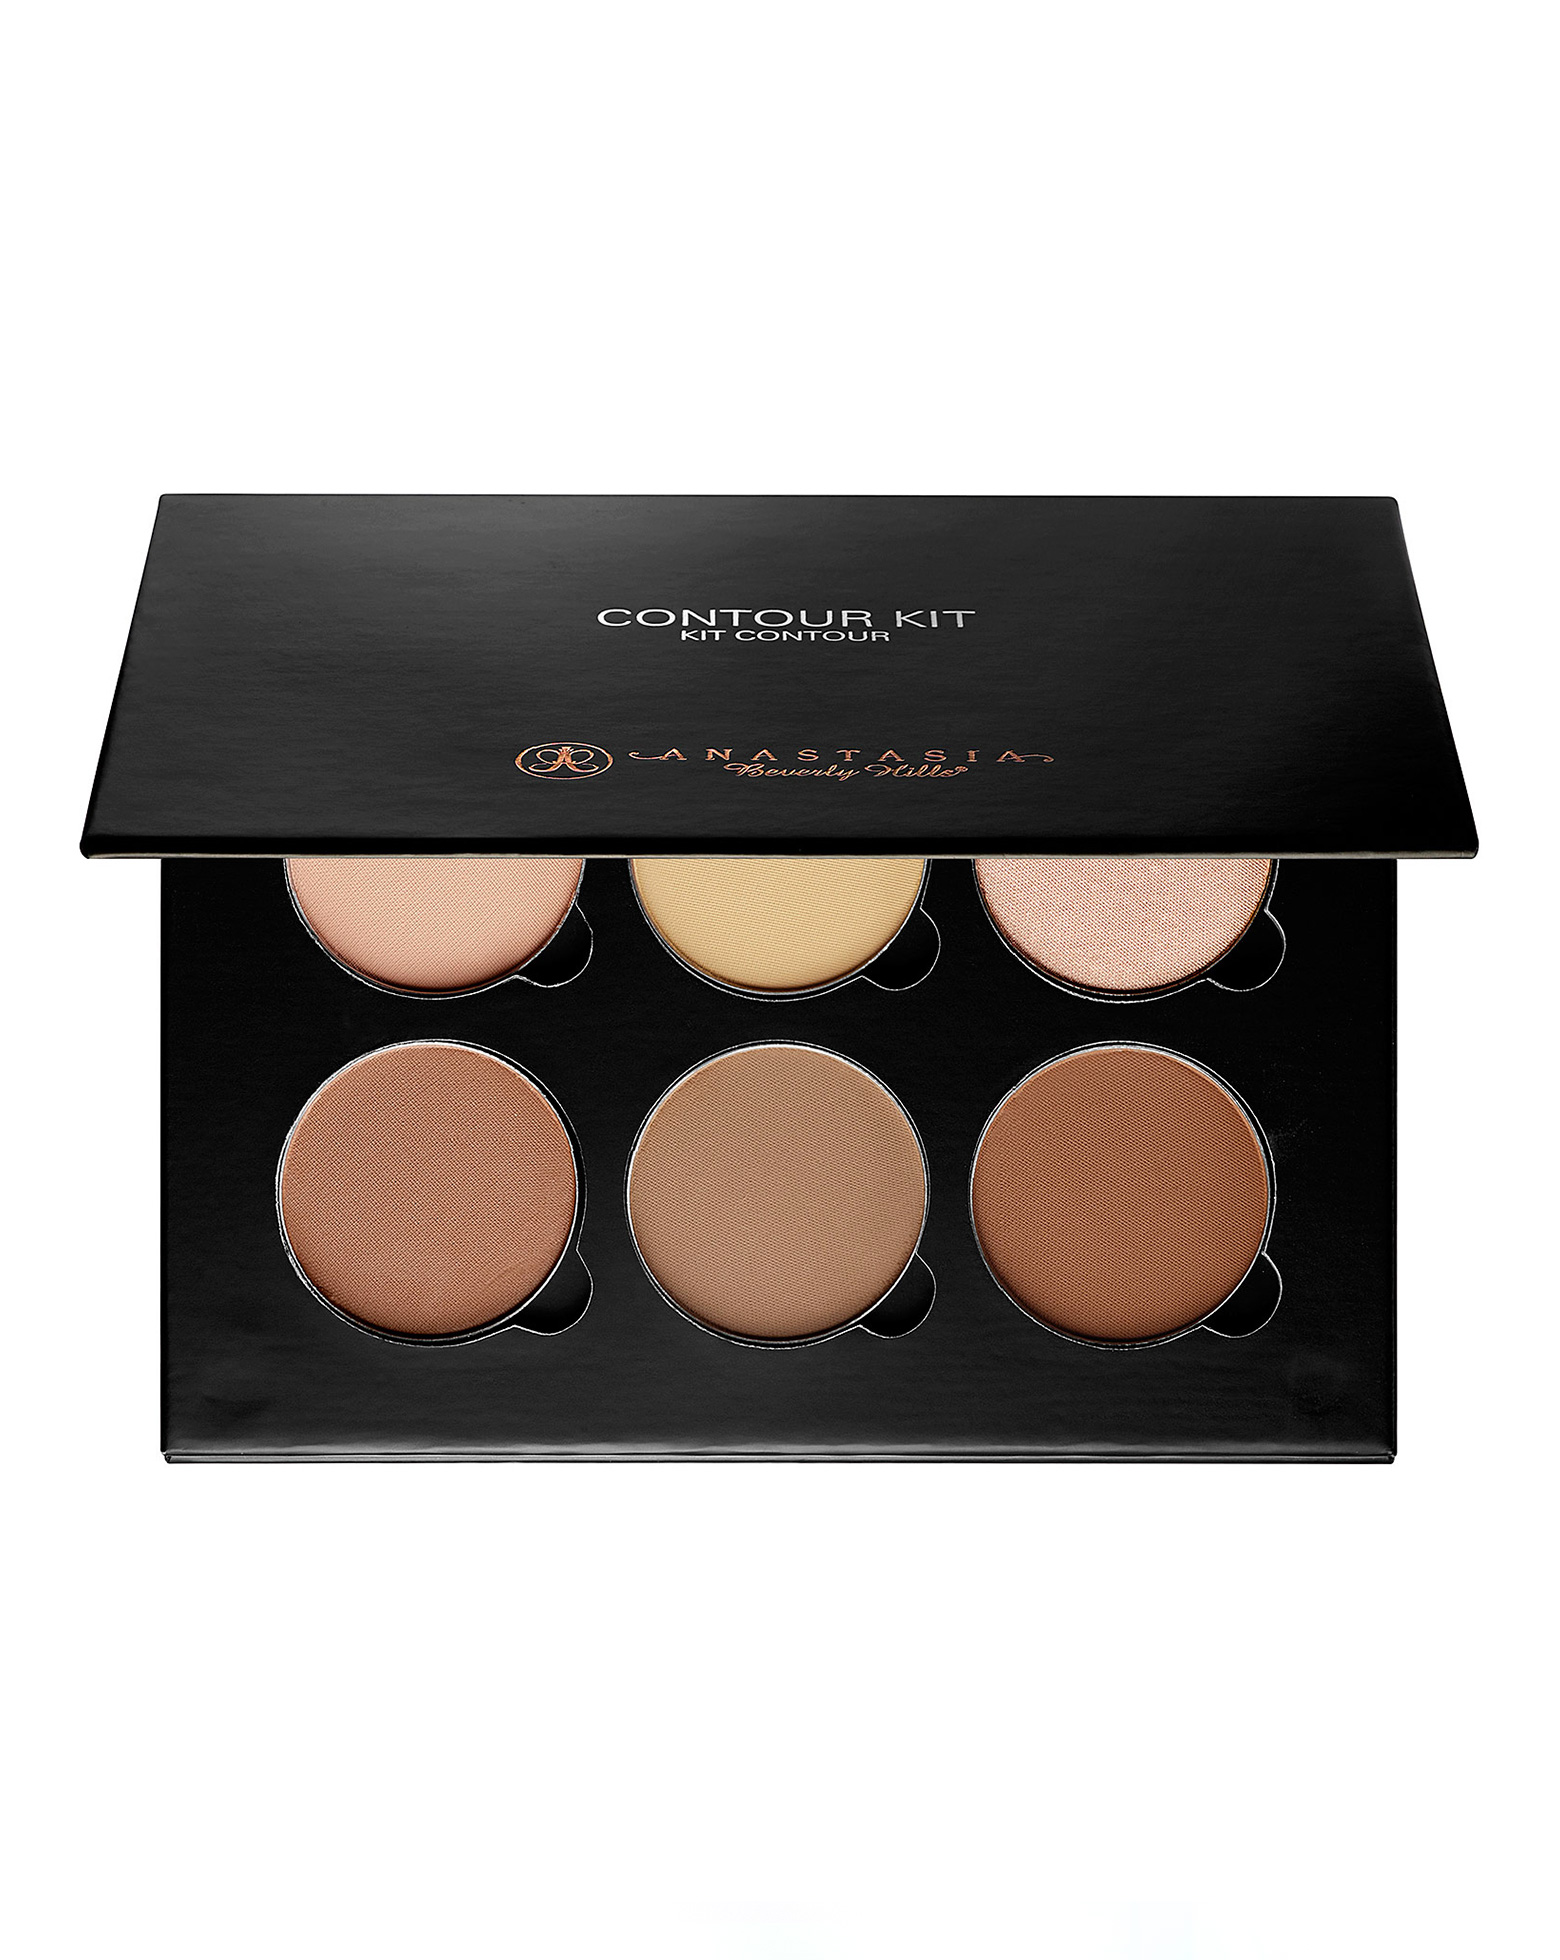 Pro Series Contour Kit By Anastasia Beverly Hills